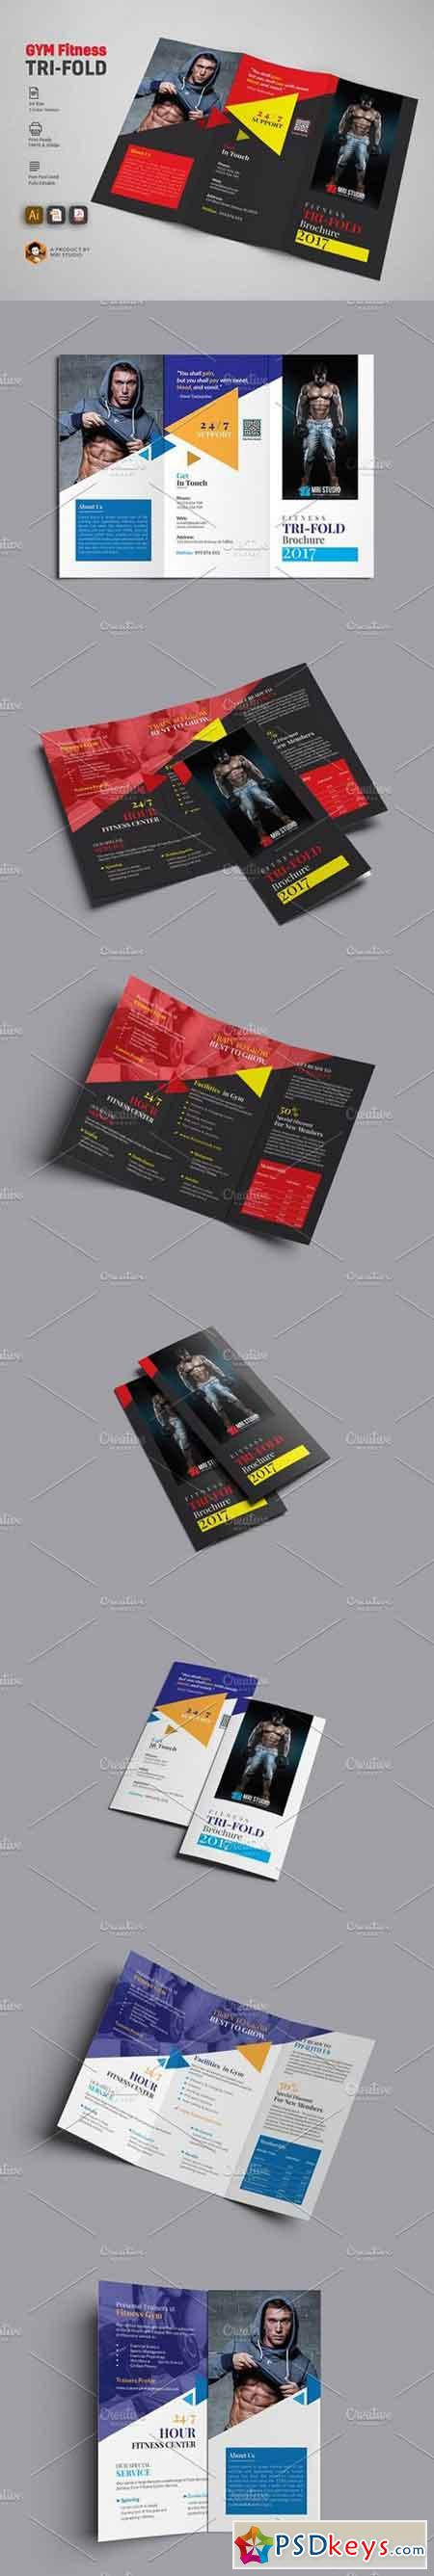 GYM Trifold Brochure 1793096